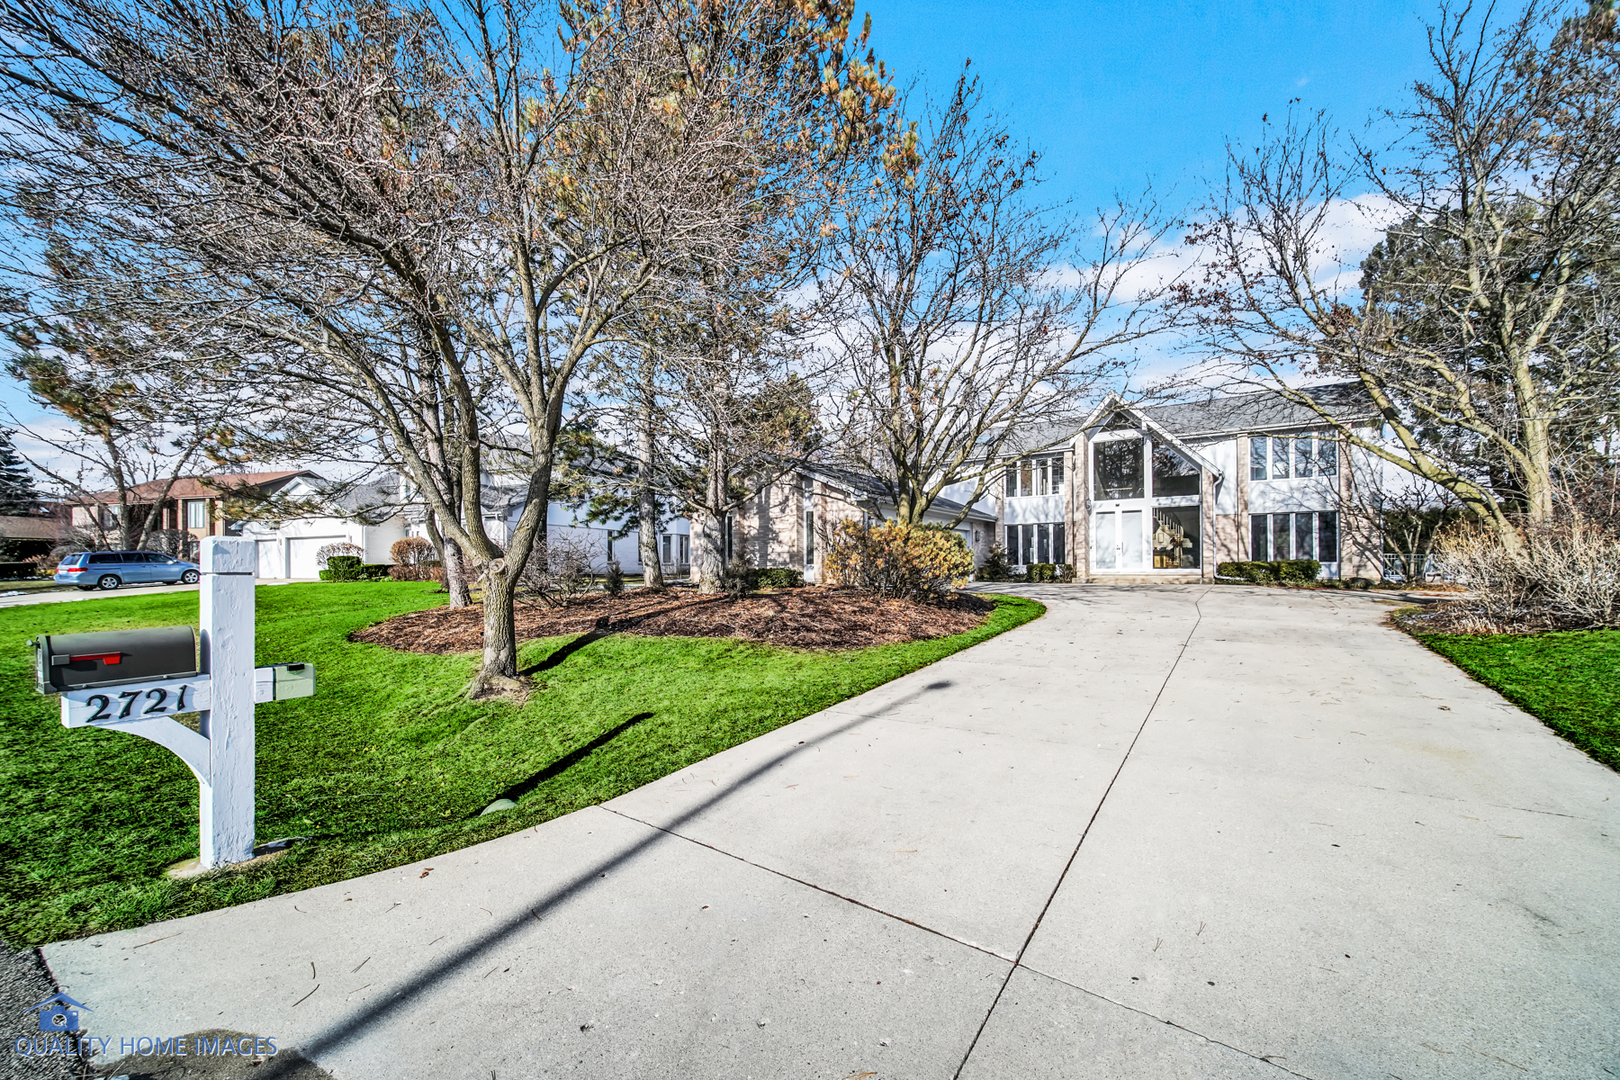 2721 Acacia Terrace, Buffalo Grove in Lake County, IL 60089 Home for Sale